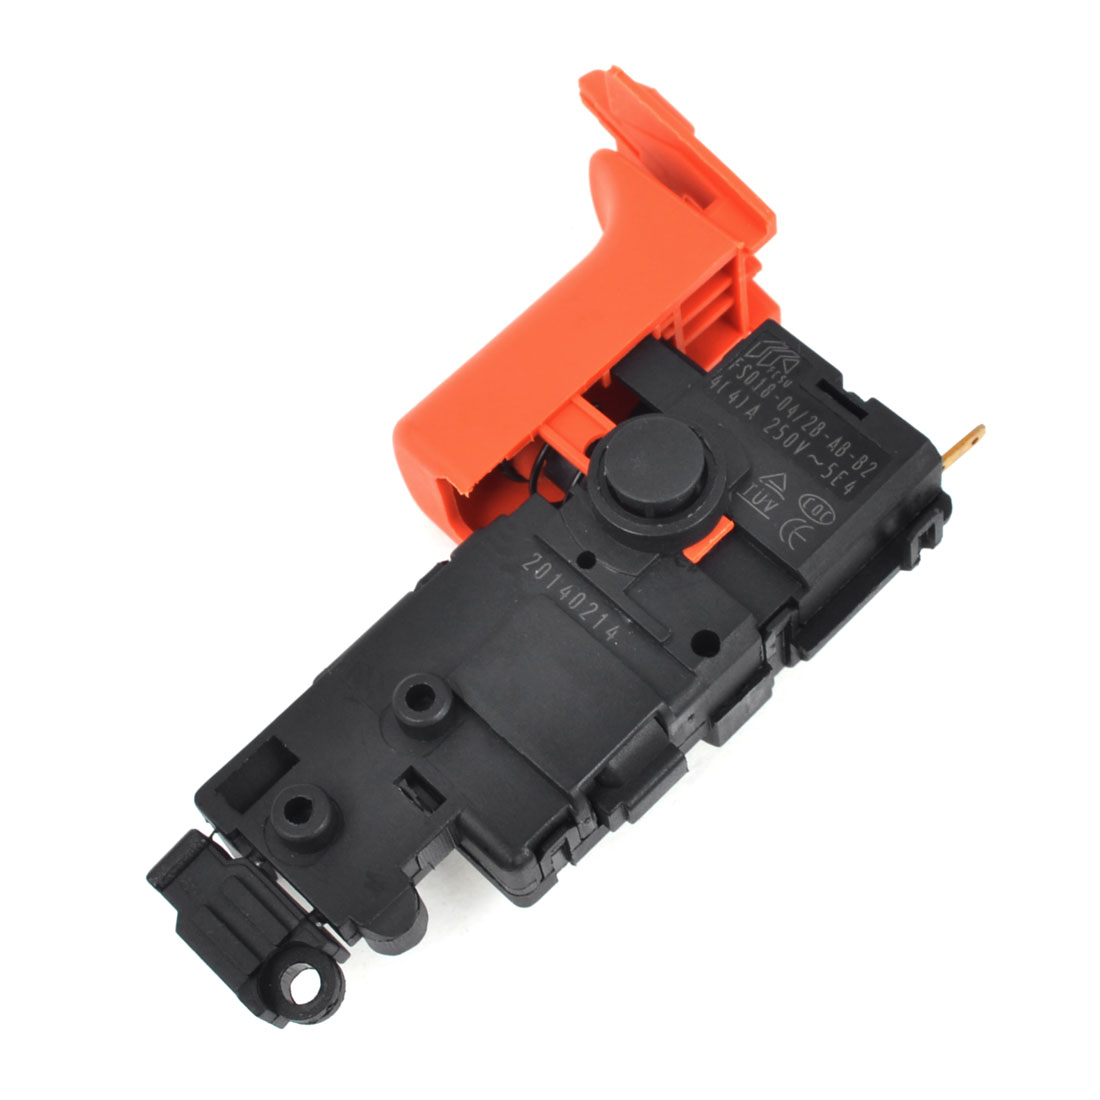 Electric Drill SPST Select Latching Trigger Switch AC 250V/4A